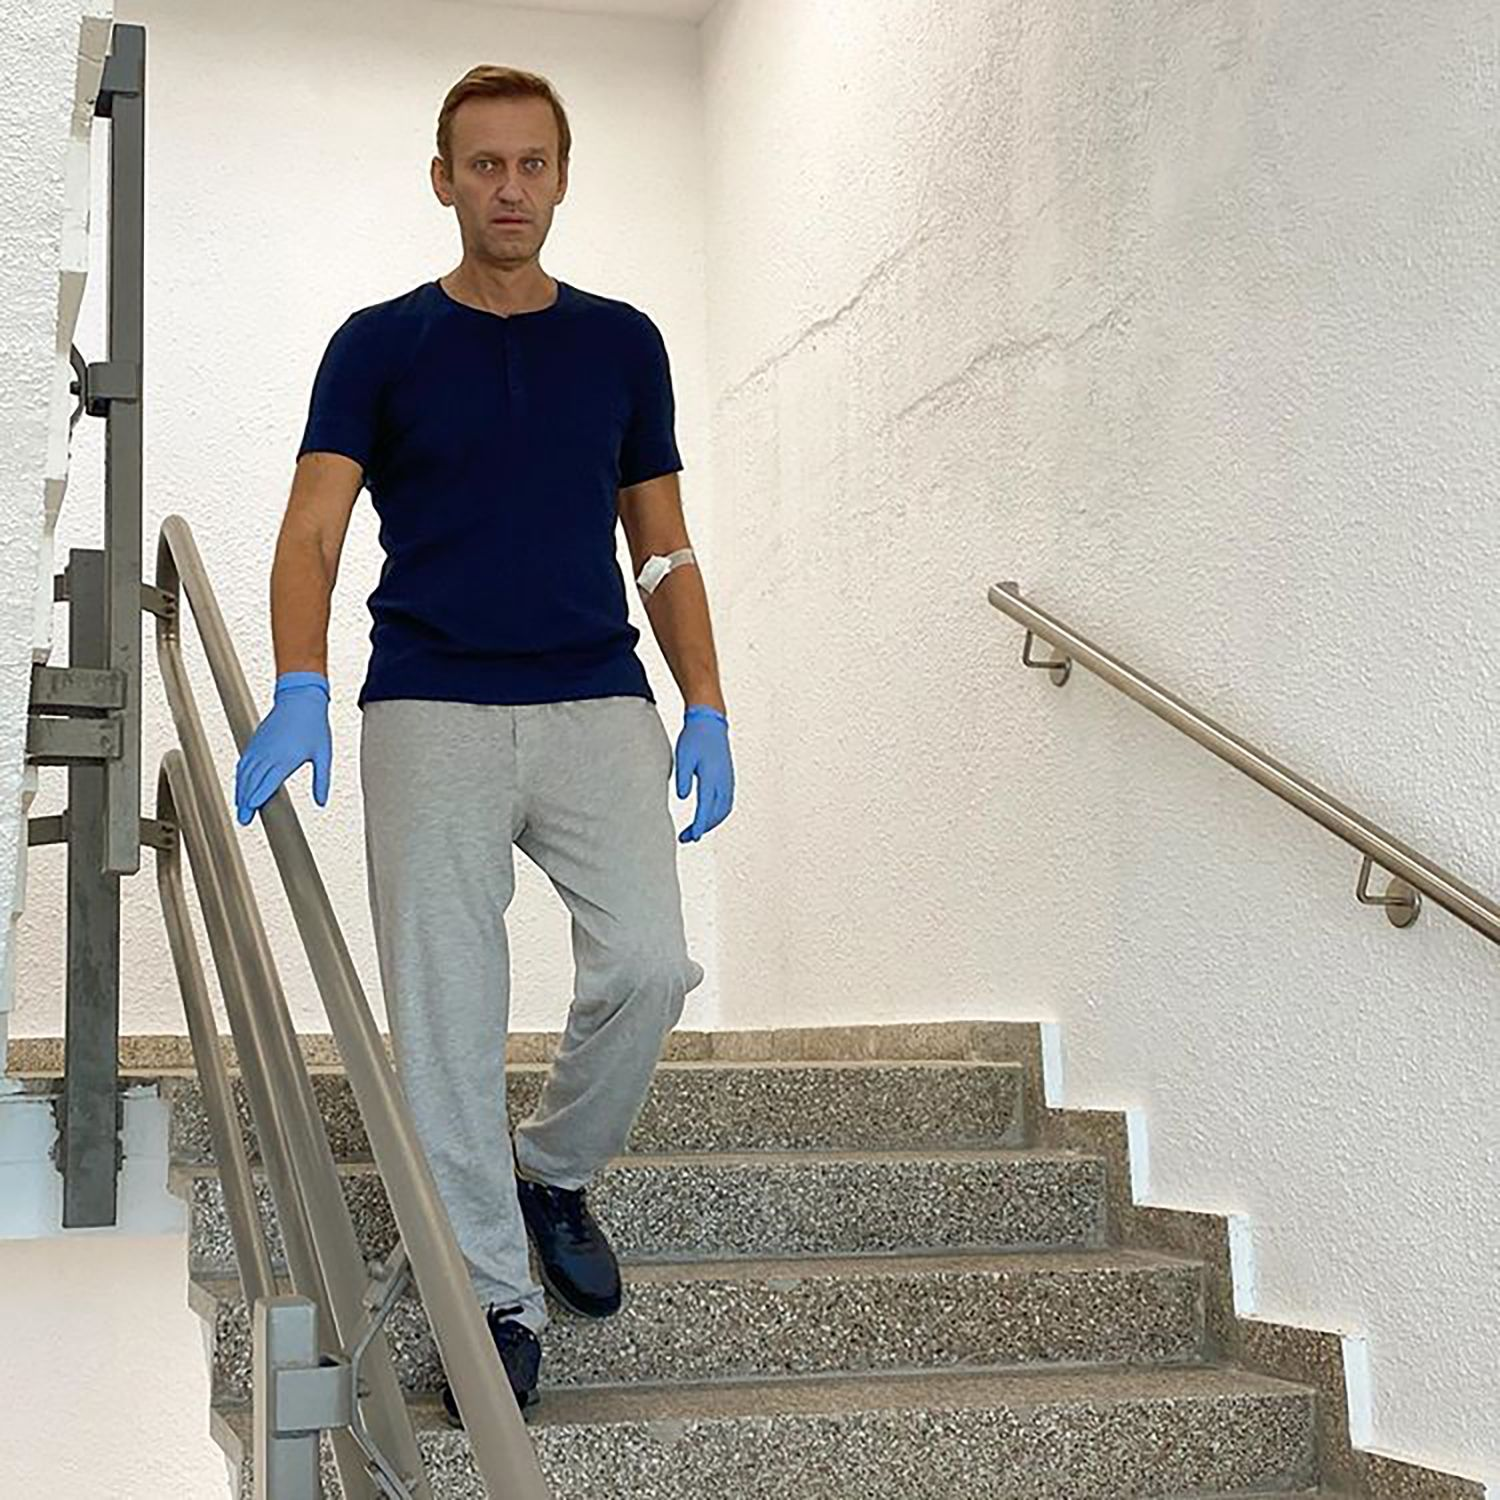 Russian opposition leader Navalny discharged from Charite hospital in Berlin, Germany - 19 Sep 2020